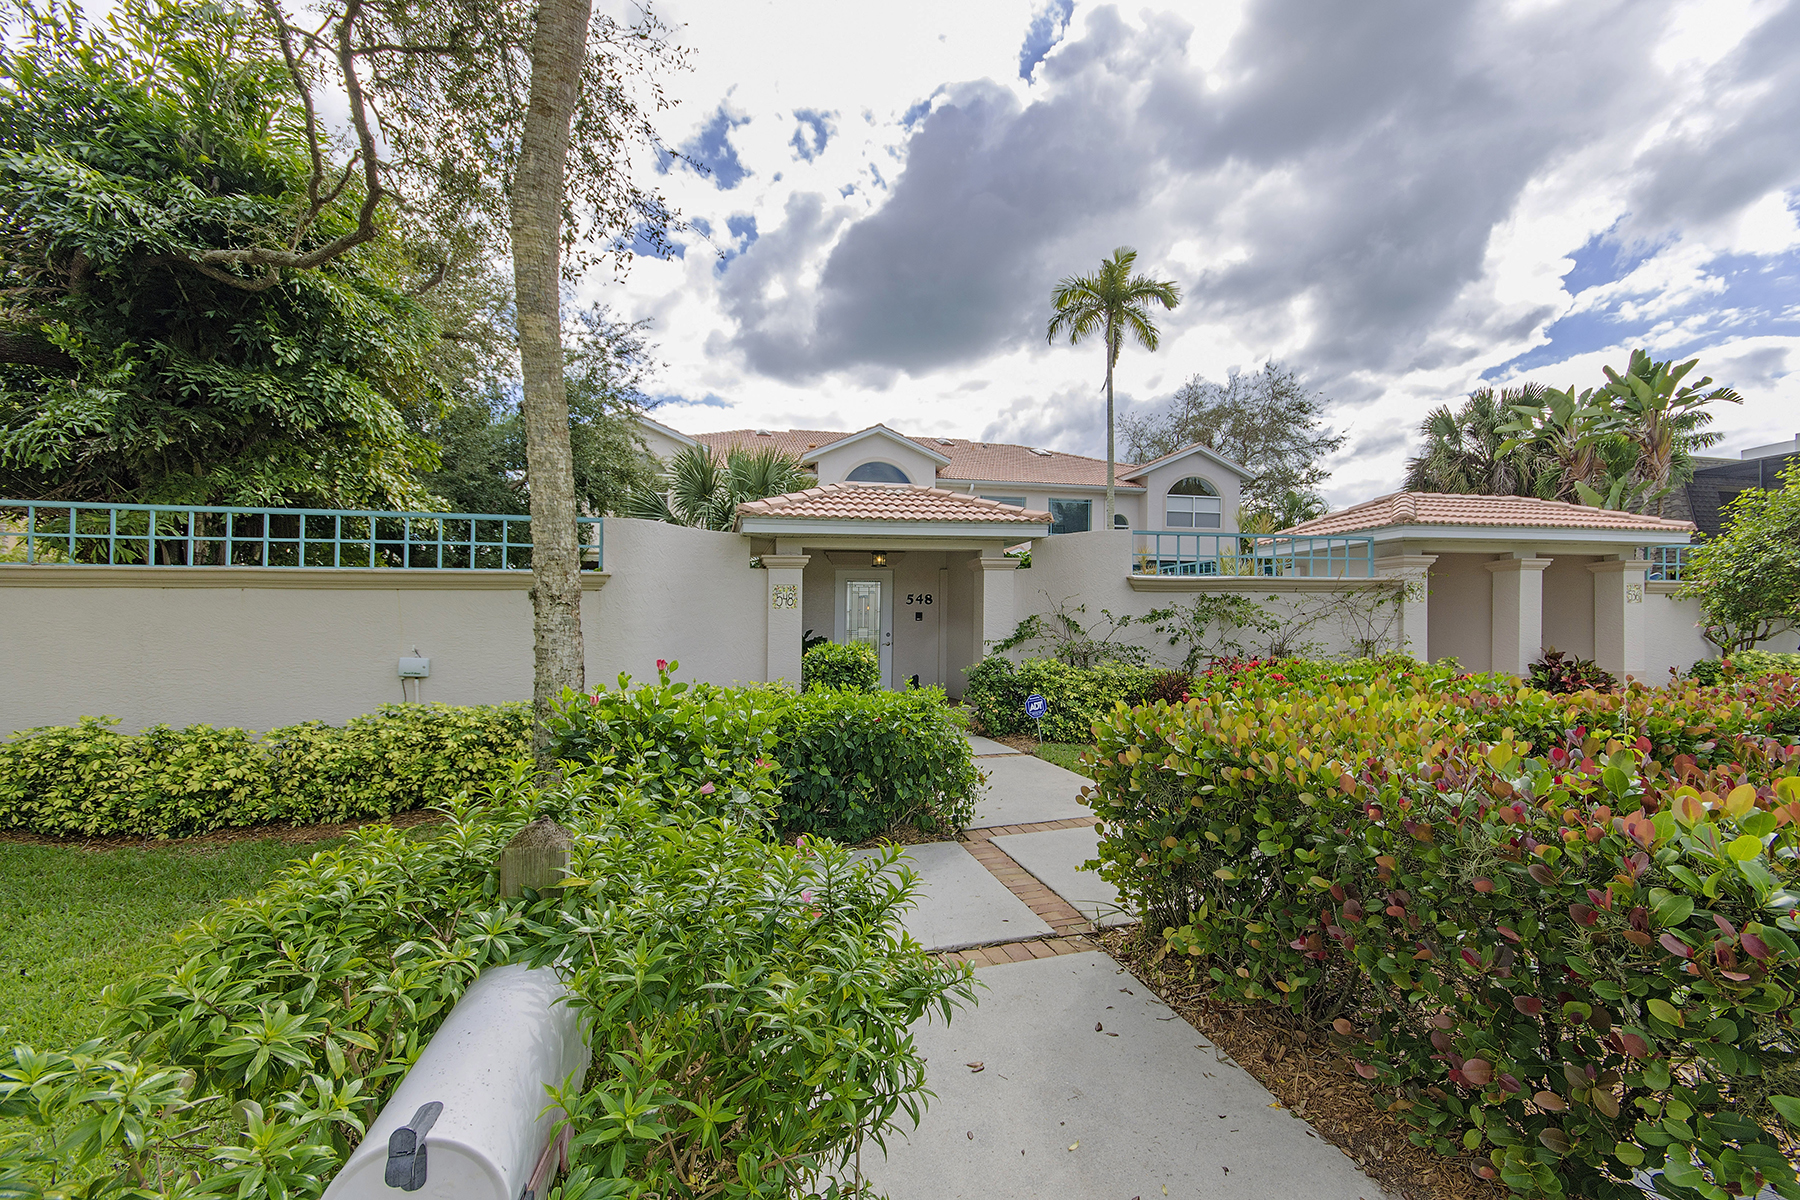 open-houses property at 548 11th Ave S, Naples, FL 34102